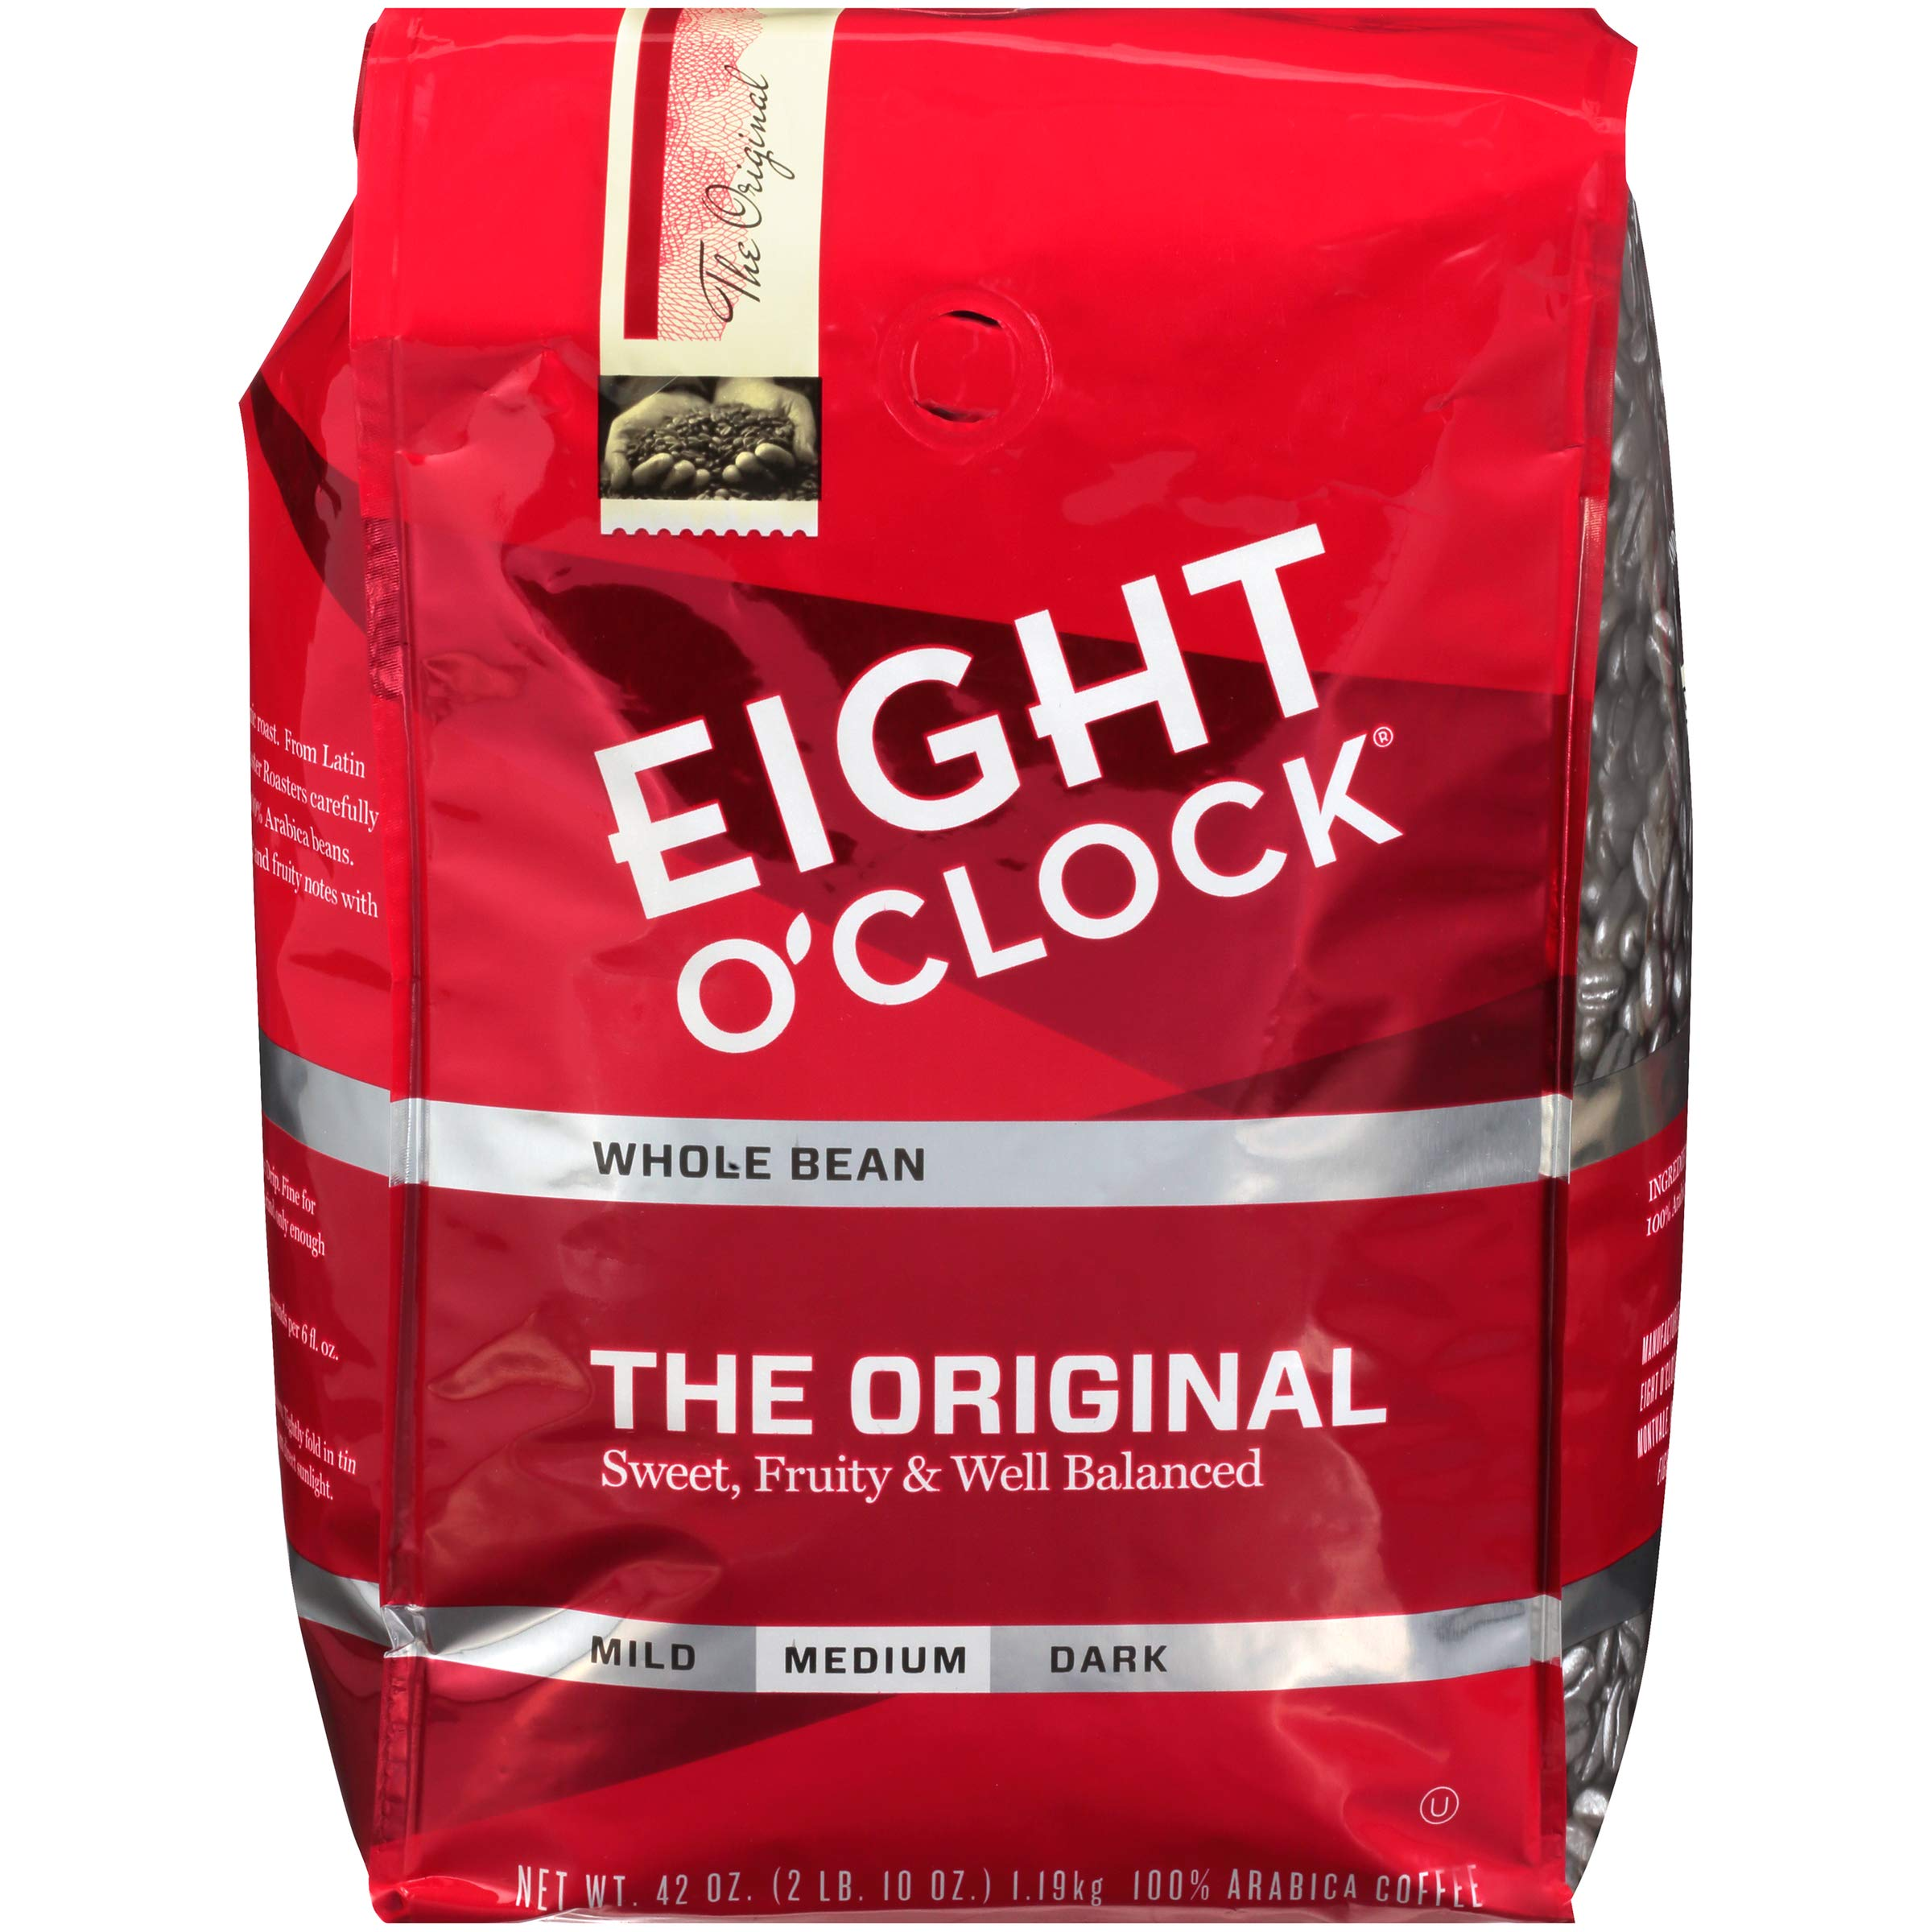 Eight O'Clock Whole Bean Coffee, The Original, 42 Ounce (Packaging May Vary) by Eight O'Clock Coffee